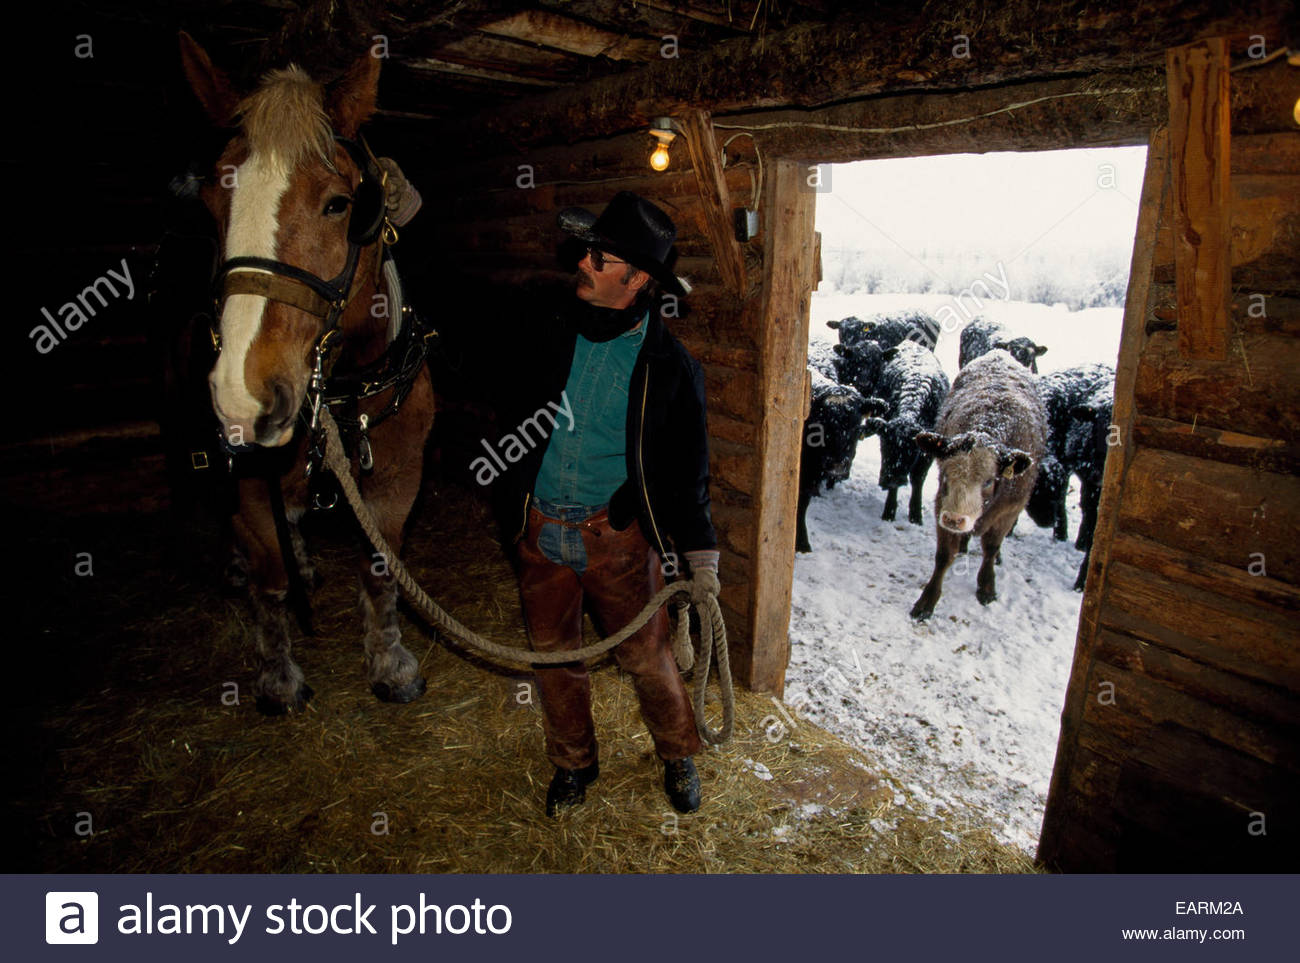 A cowboy prepares his draft horse for a morning of pulling a sleigh. - Stock Image